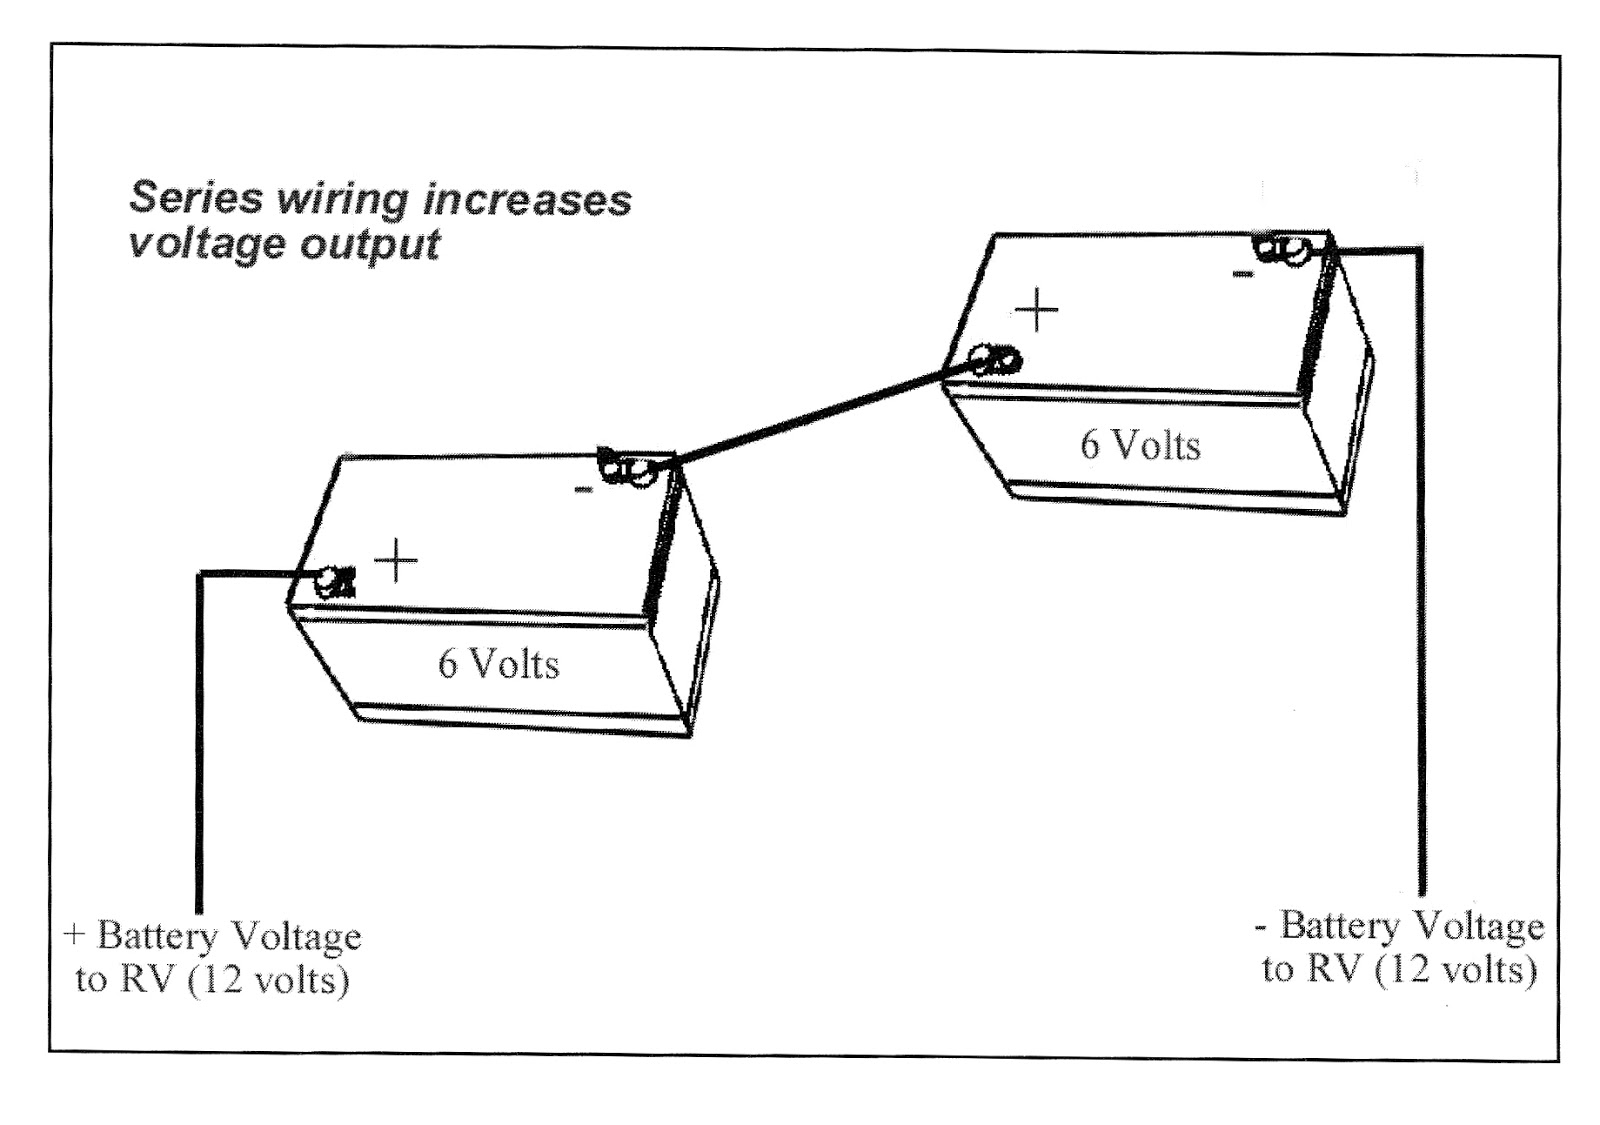 Rv Battery Bank Wiring Diagram 2010 Kawasaki Brute Force 750 Penny 39s Tuppence 2 Cents In Brit Transmission 12v